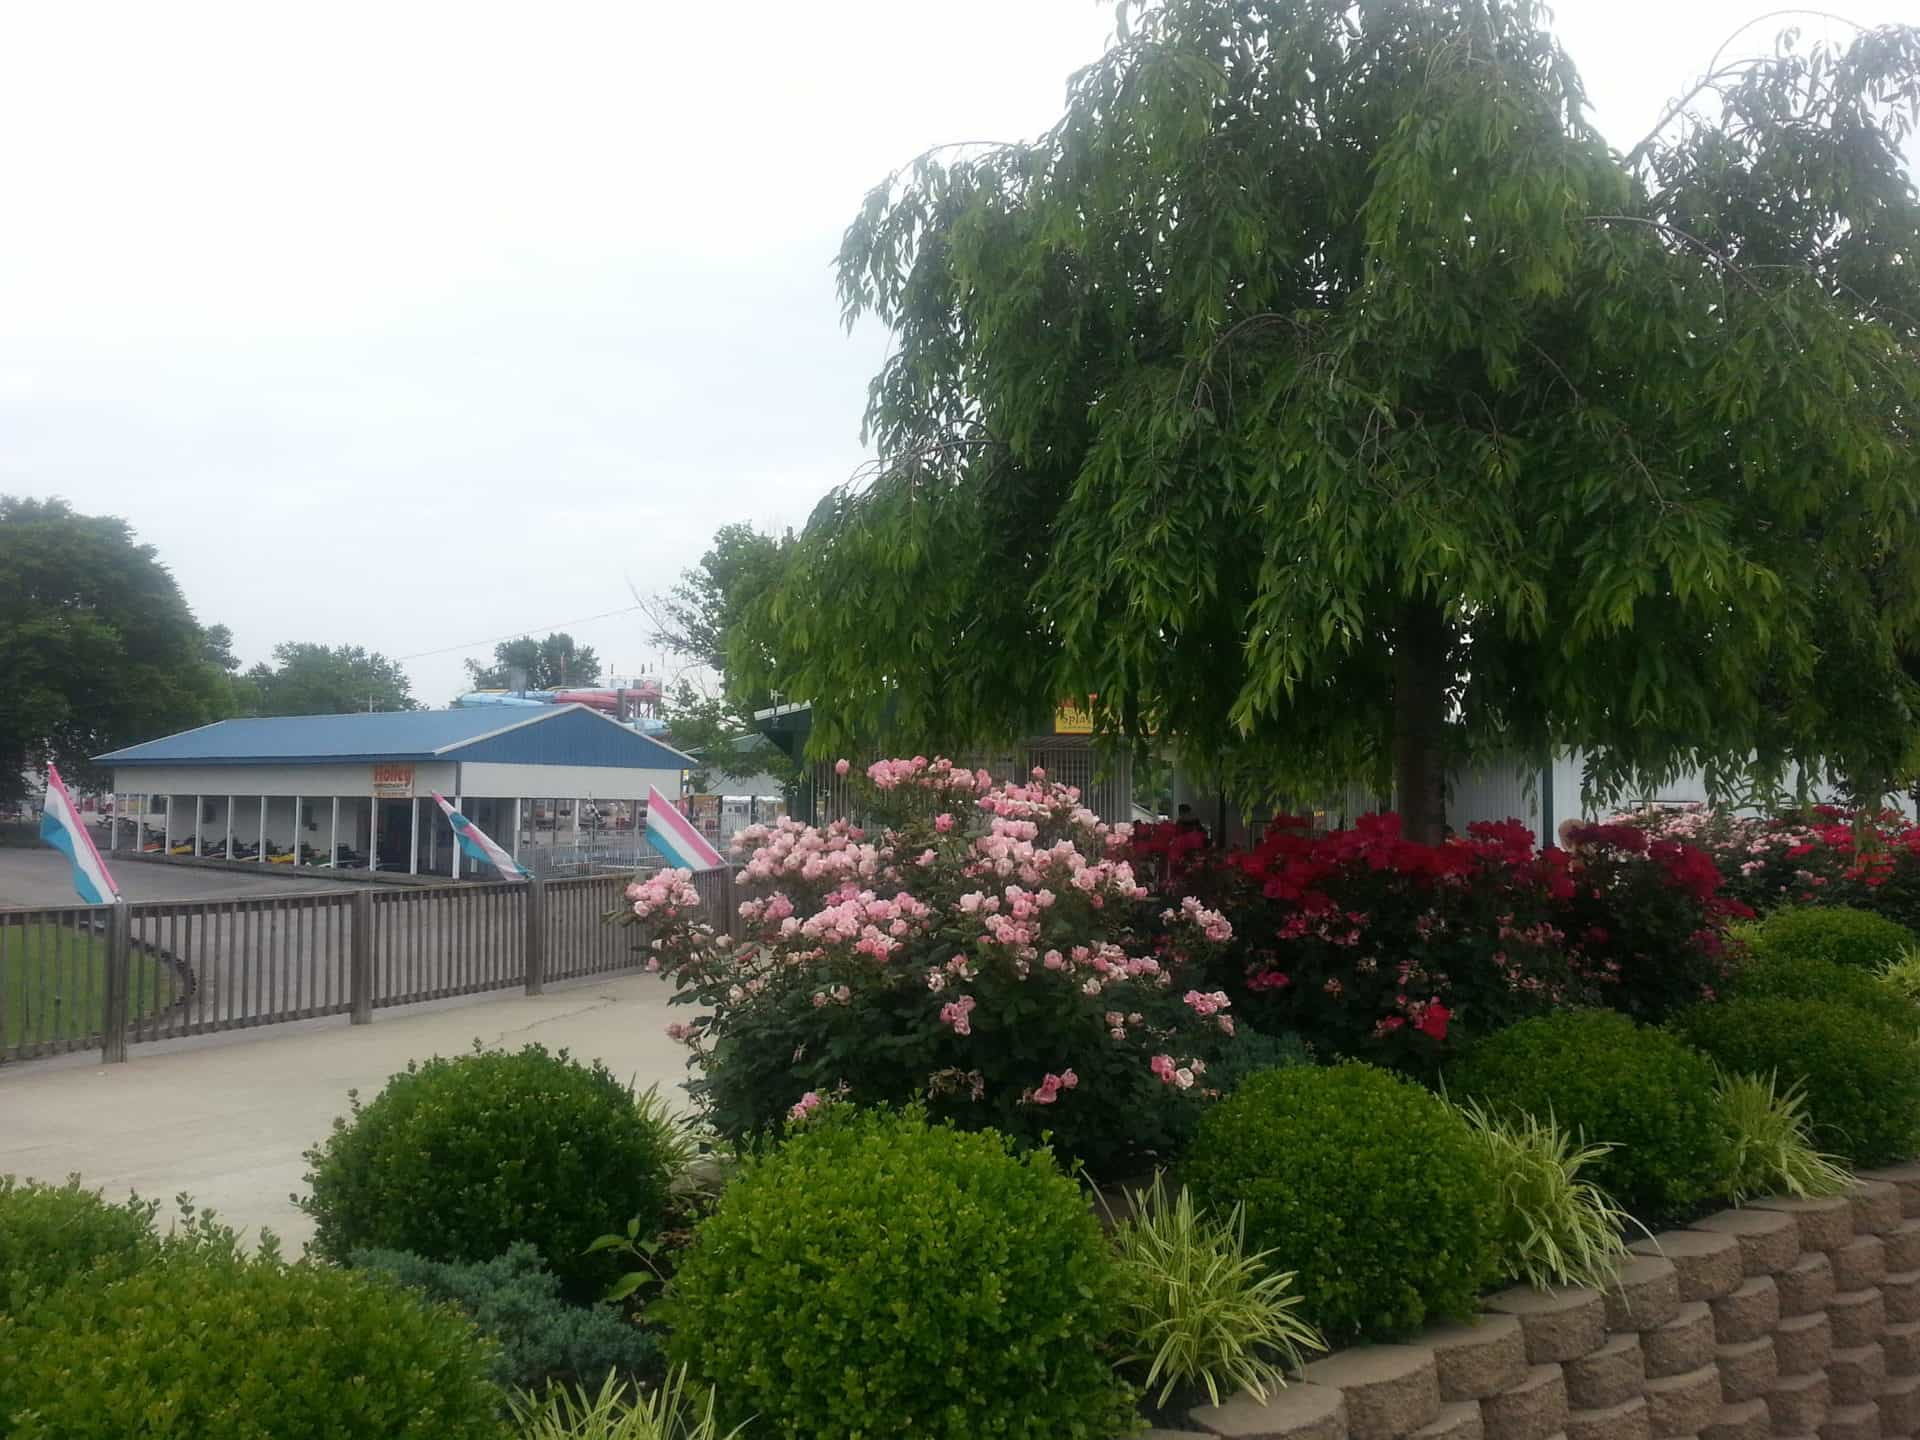 Beech Bend Park and Splash Lagoon - Gardens